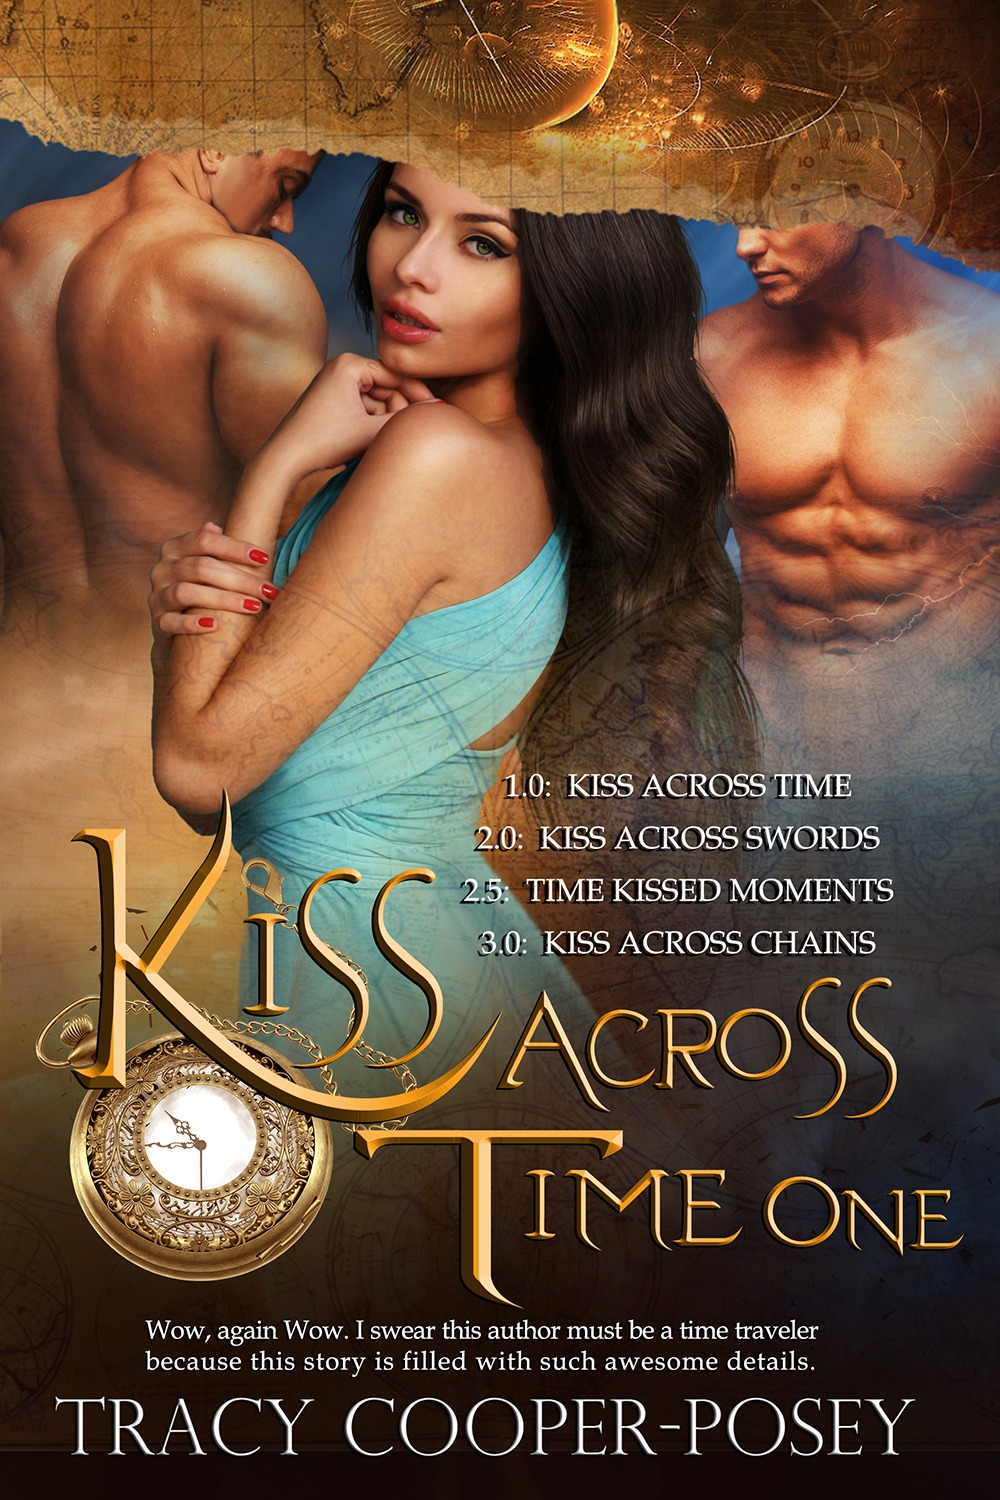 New Boxed Set – Time Travel Paranormal Romance!